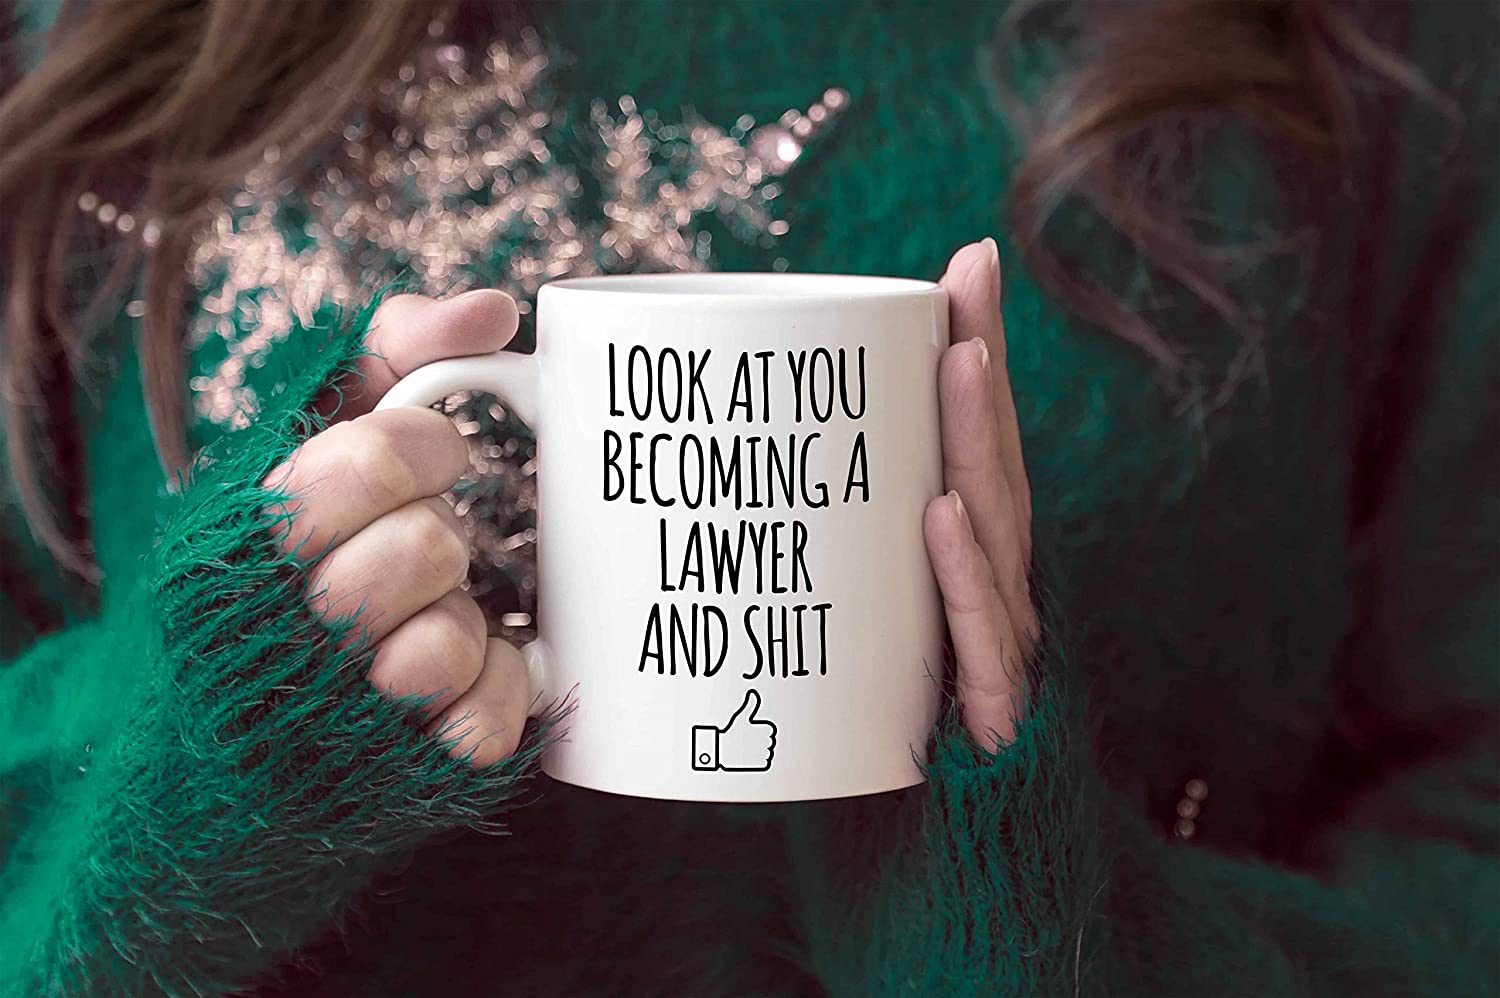 Law School Graduation Gifts Look At You Becoming A Lawyer And Shit Coffee Mug Lawyer Graduates Funny Grad Diploma or Academic Degree Congratulations LSAT Coffee Mug School Students Class of 2019